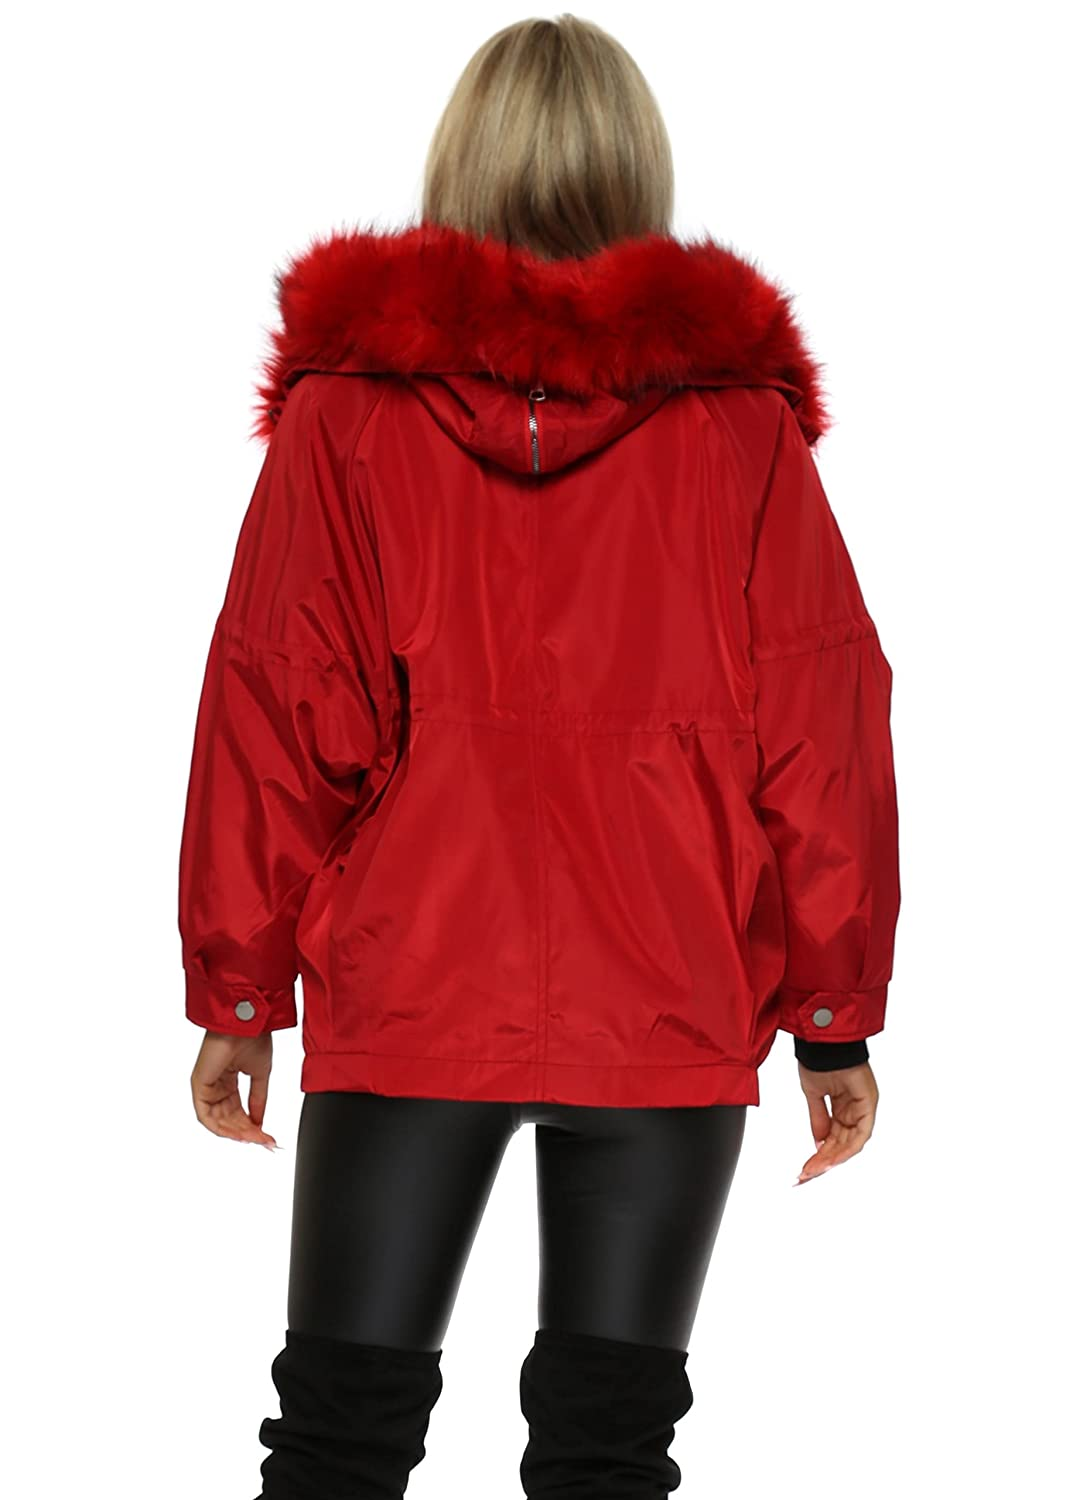 92d62f16ccae Drole de Copine Red Hooded Puffer Jacket with Detachable Faux Fur M/L Red:  Amazon.co.uk: Clothing